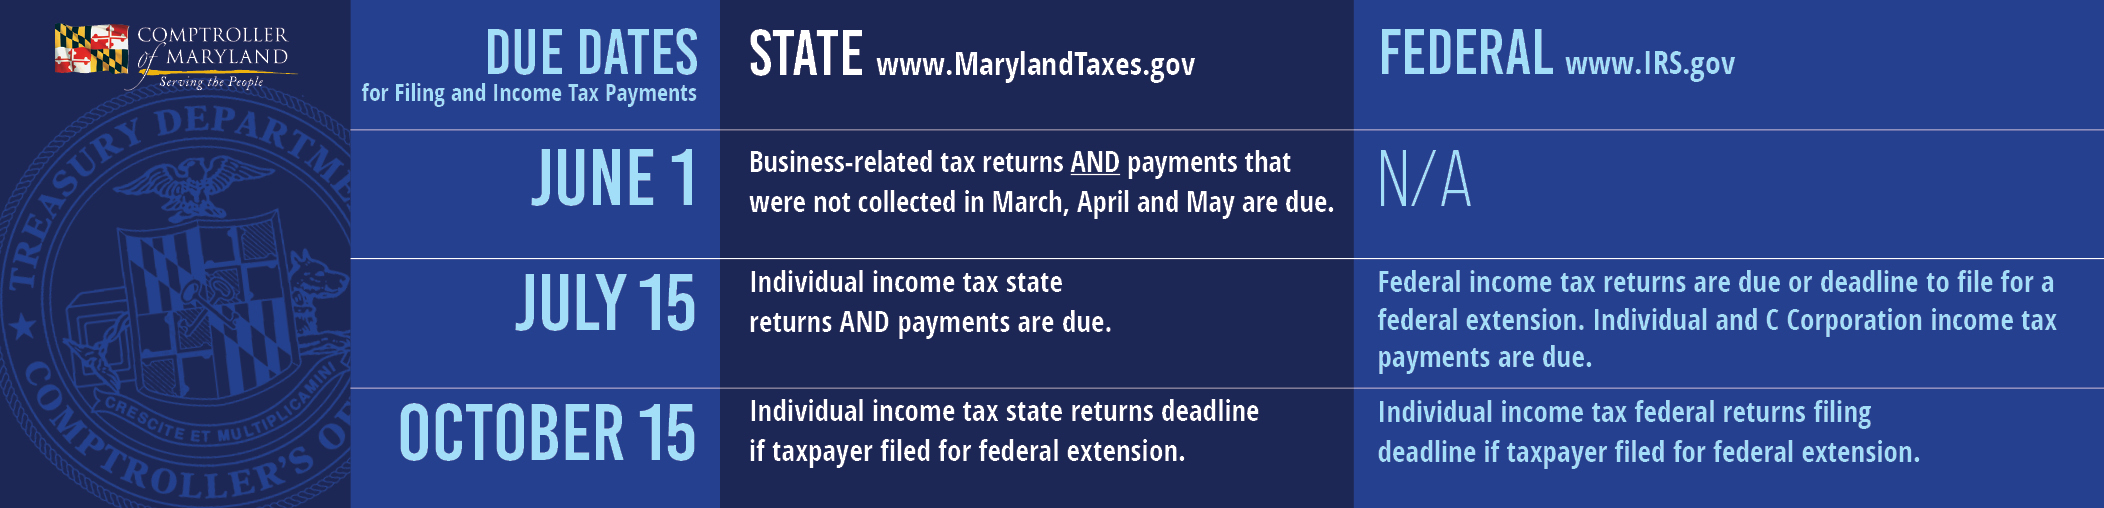 What To Know About Covid 19 And Taxes Deadline Delays The Cares Act And More